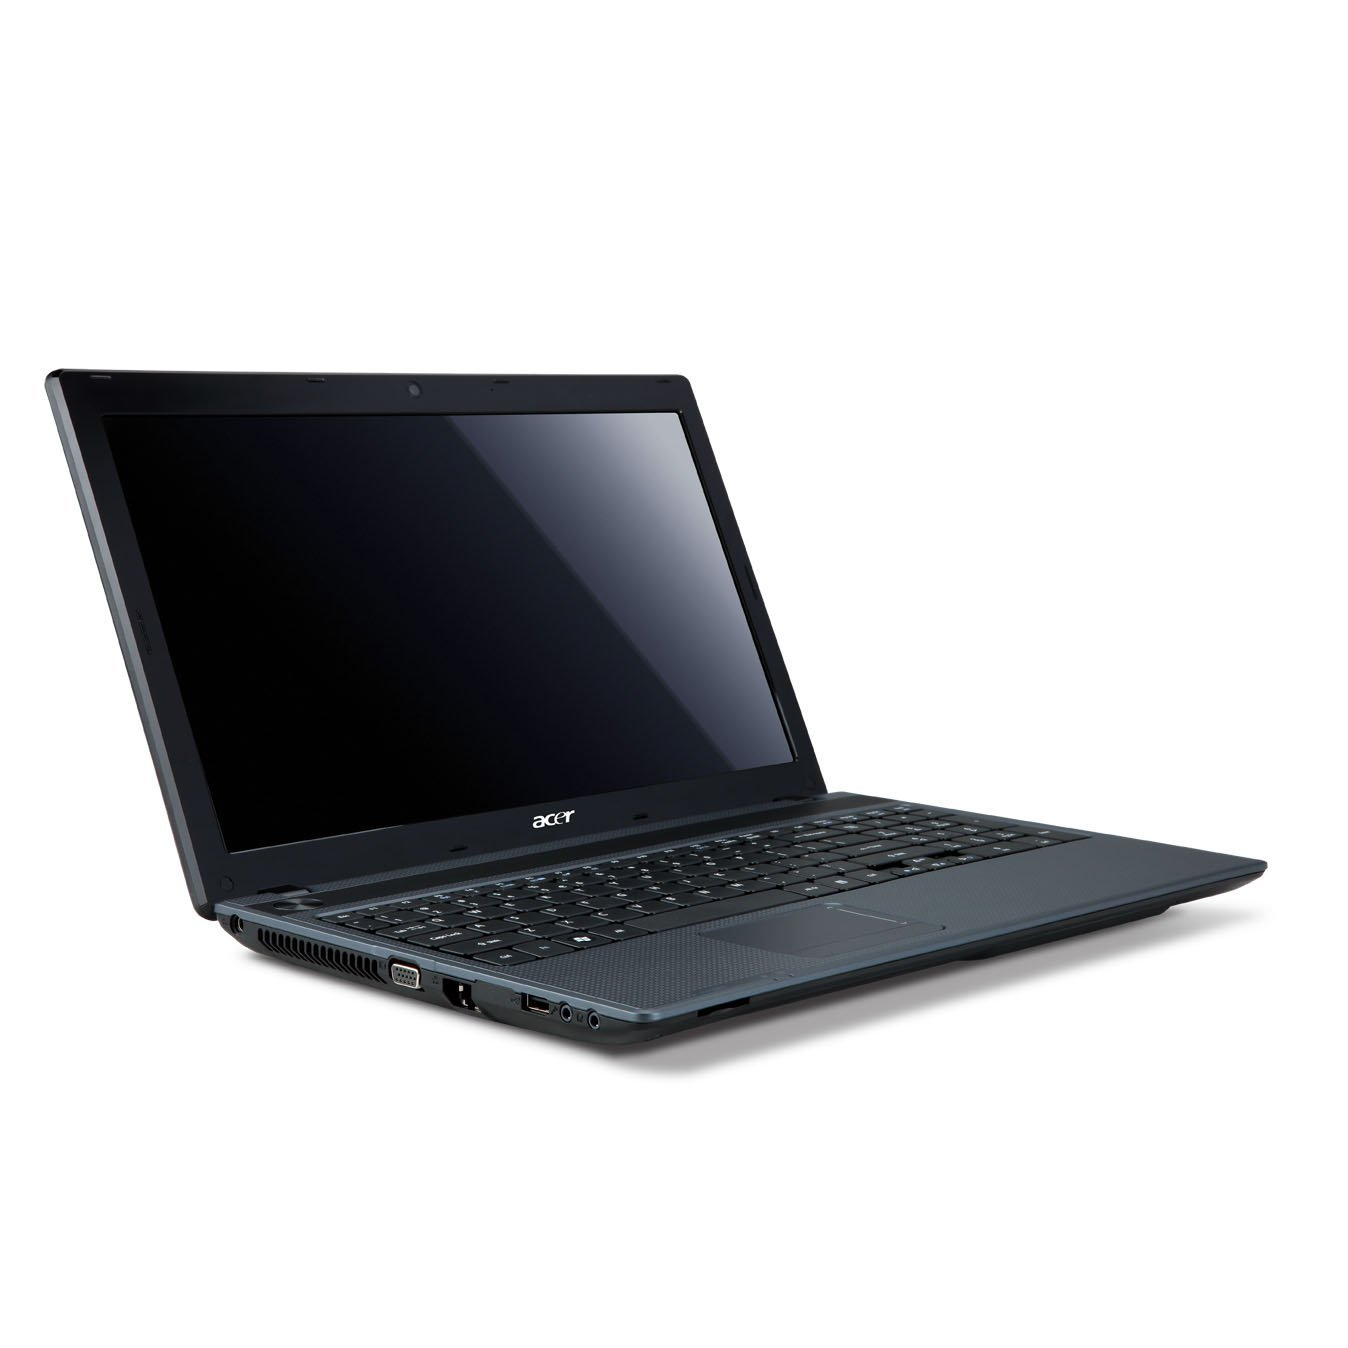 acer aspire 5733 notebook pc review spec notebook review click here. Black Bedroom Furniture Sets. Home Design Ideas